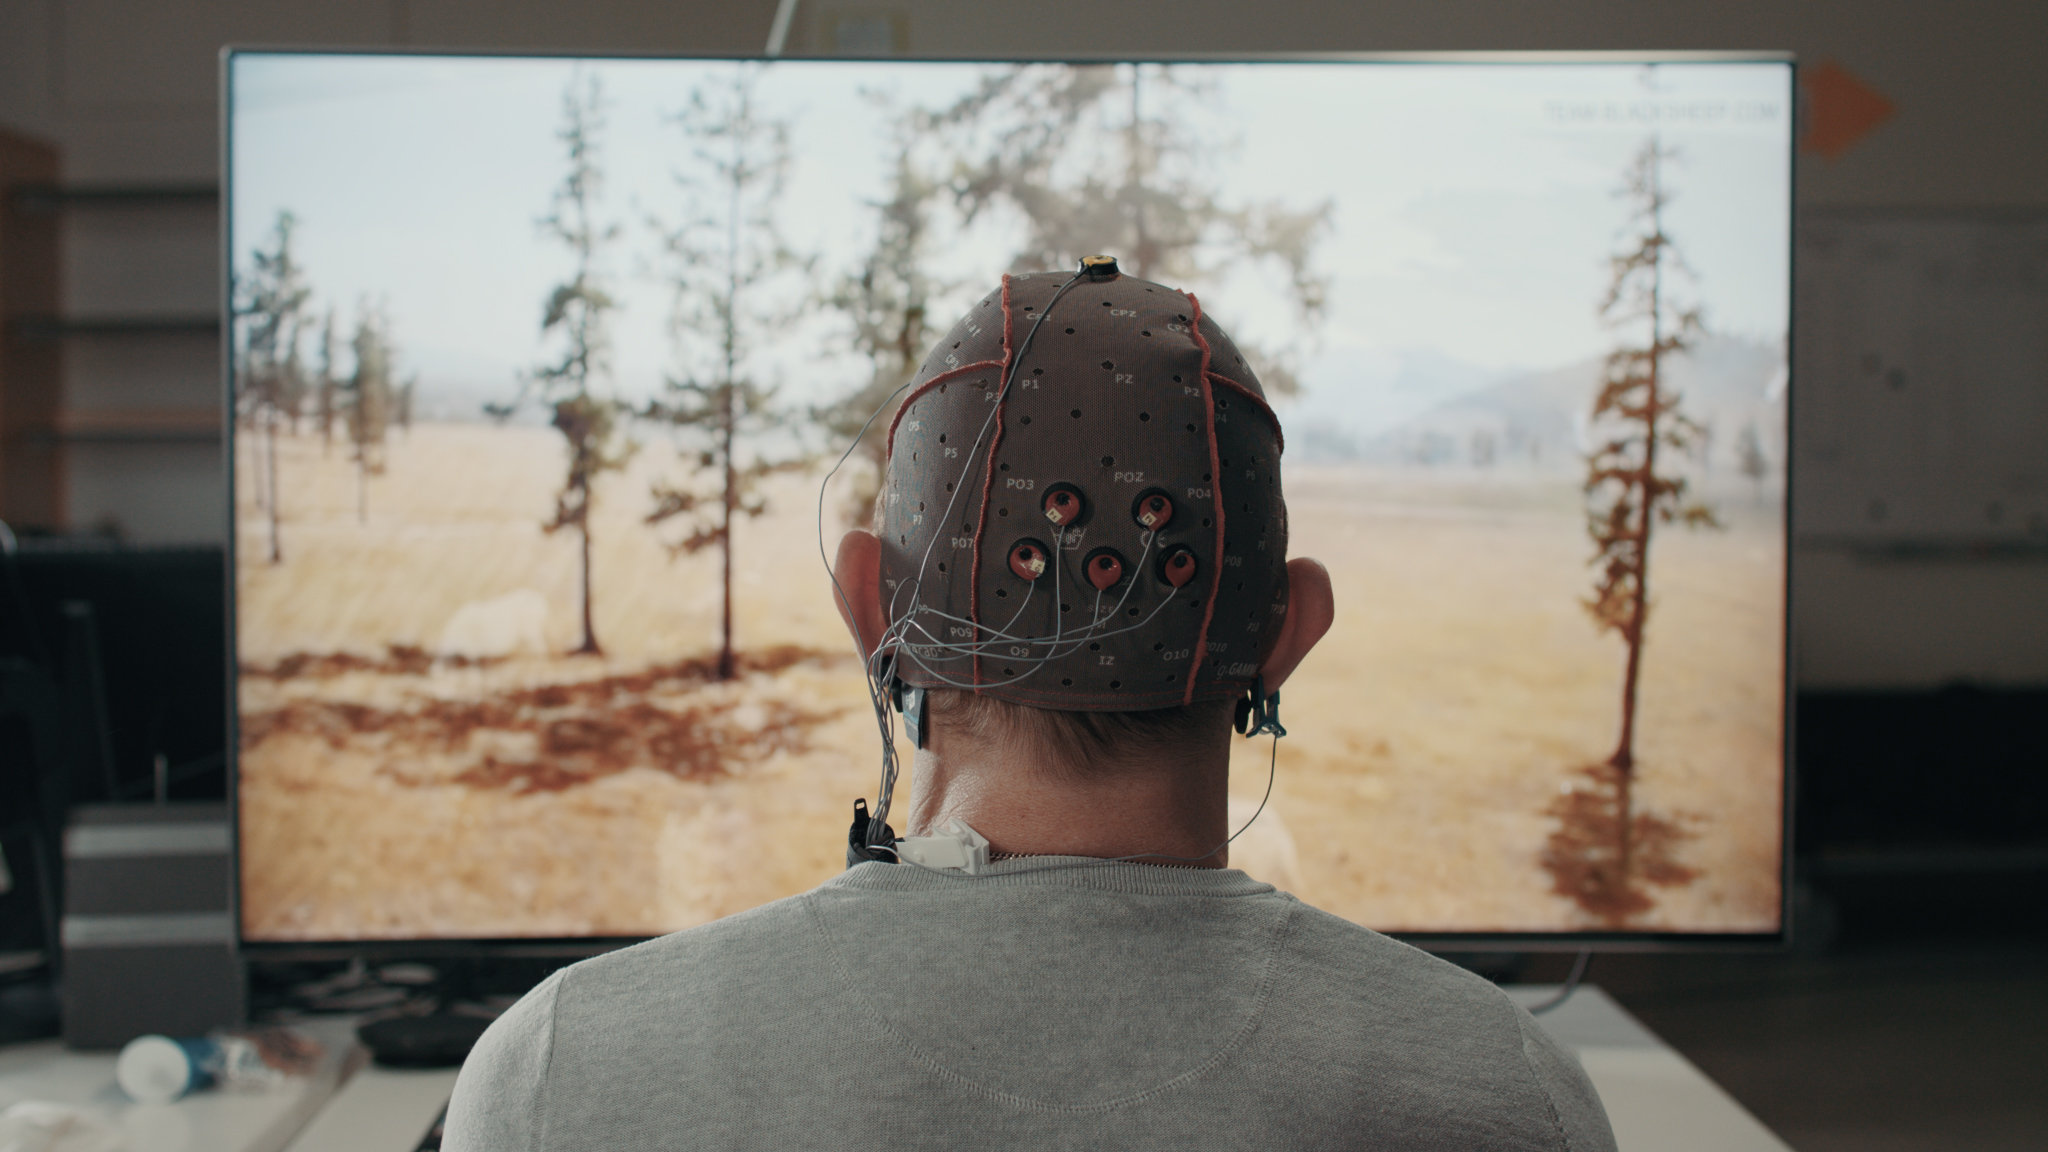 Meet the People Building the TV Controlled by Your Brain